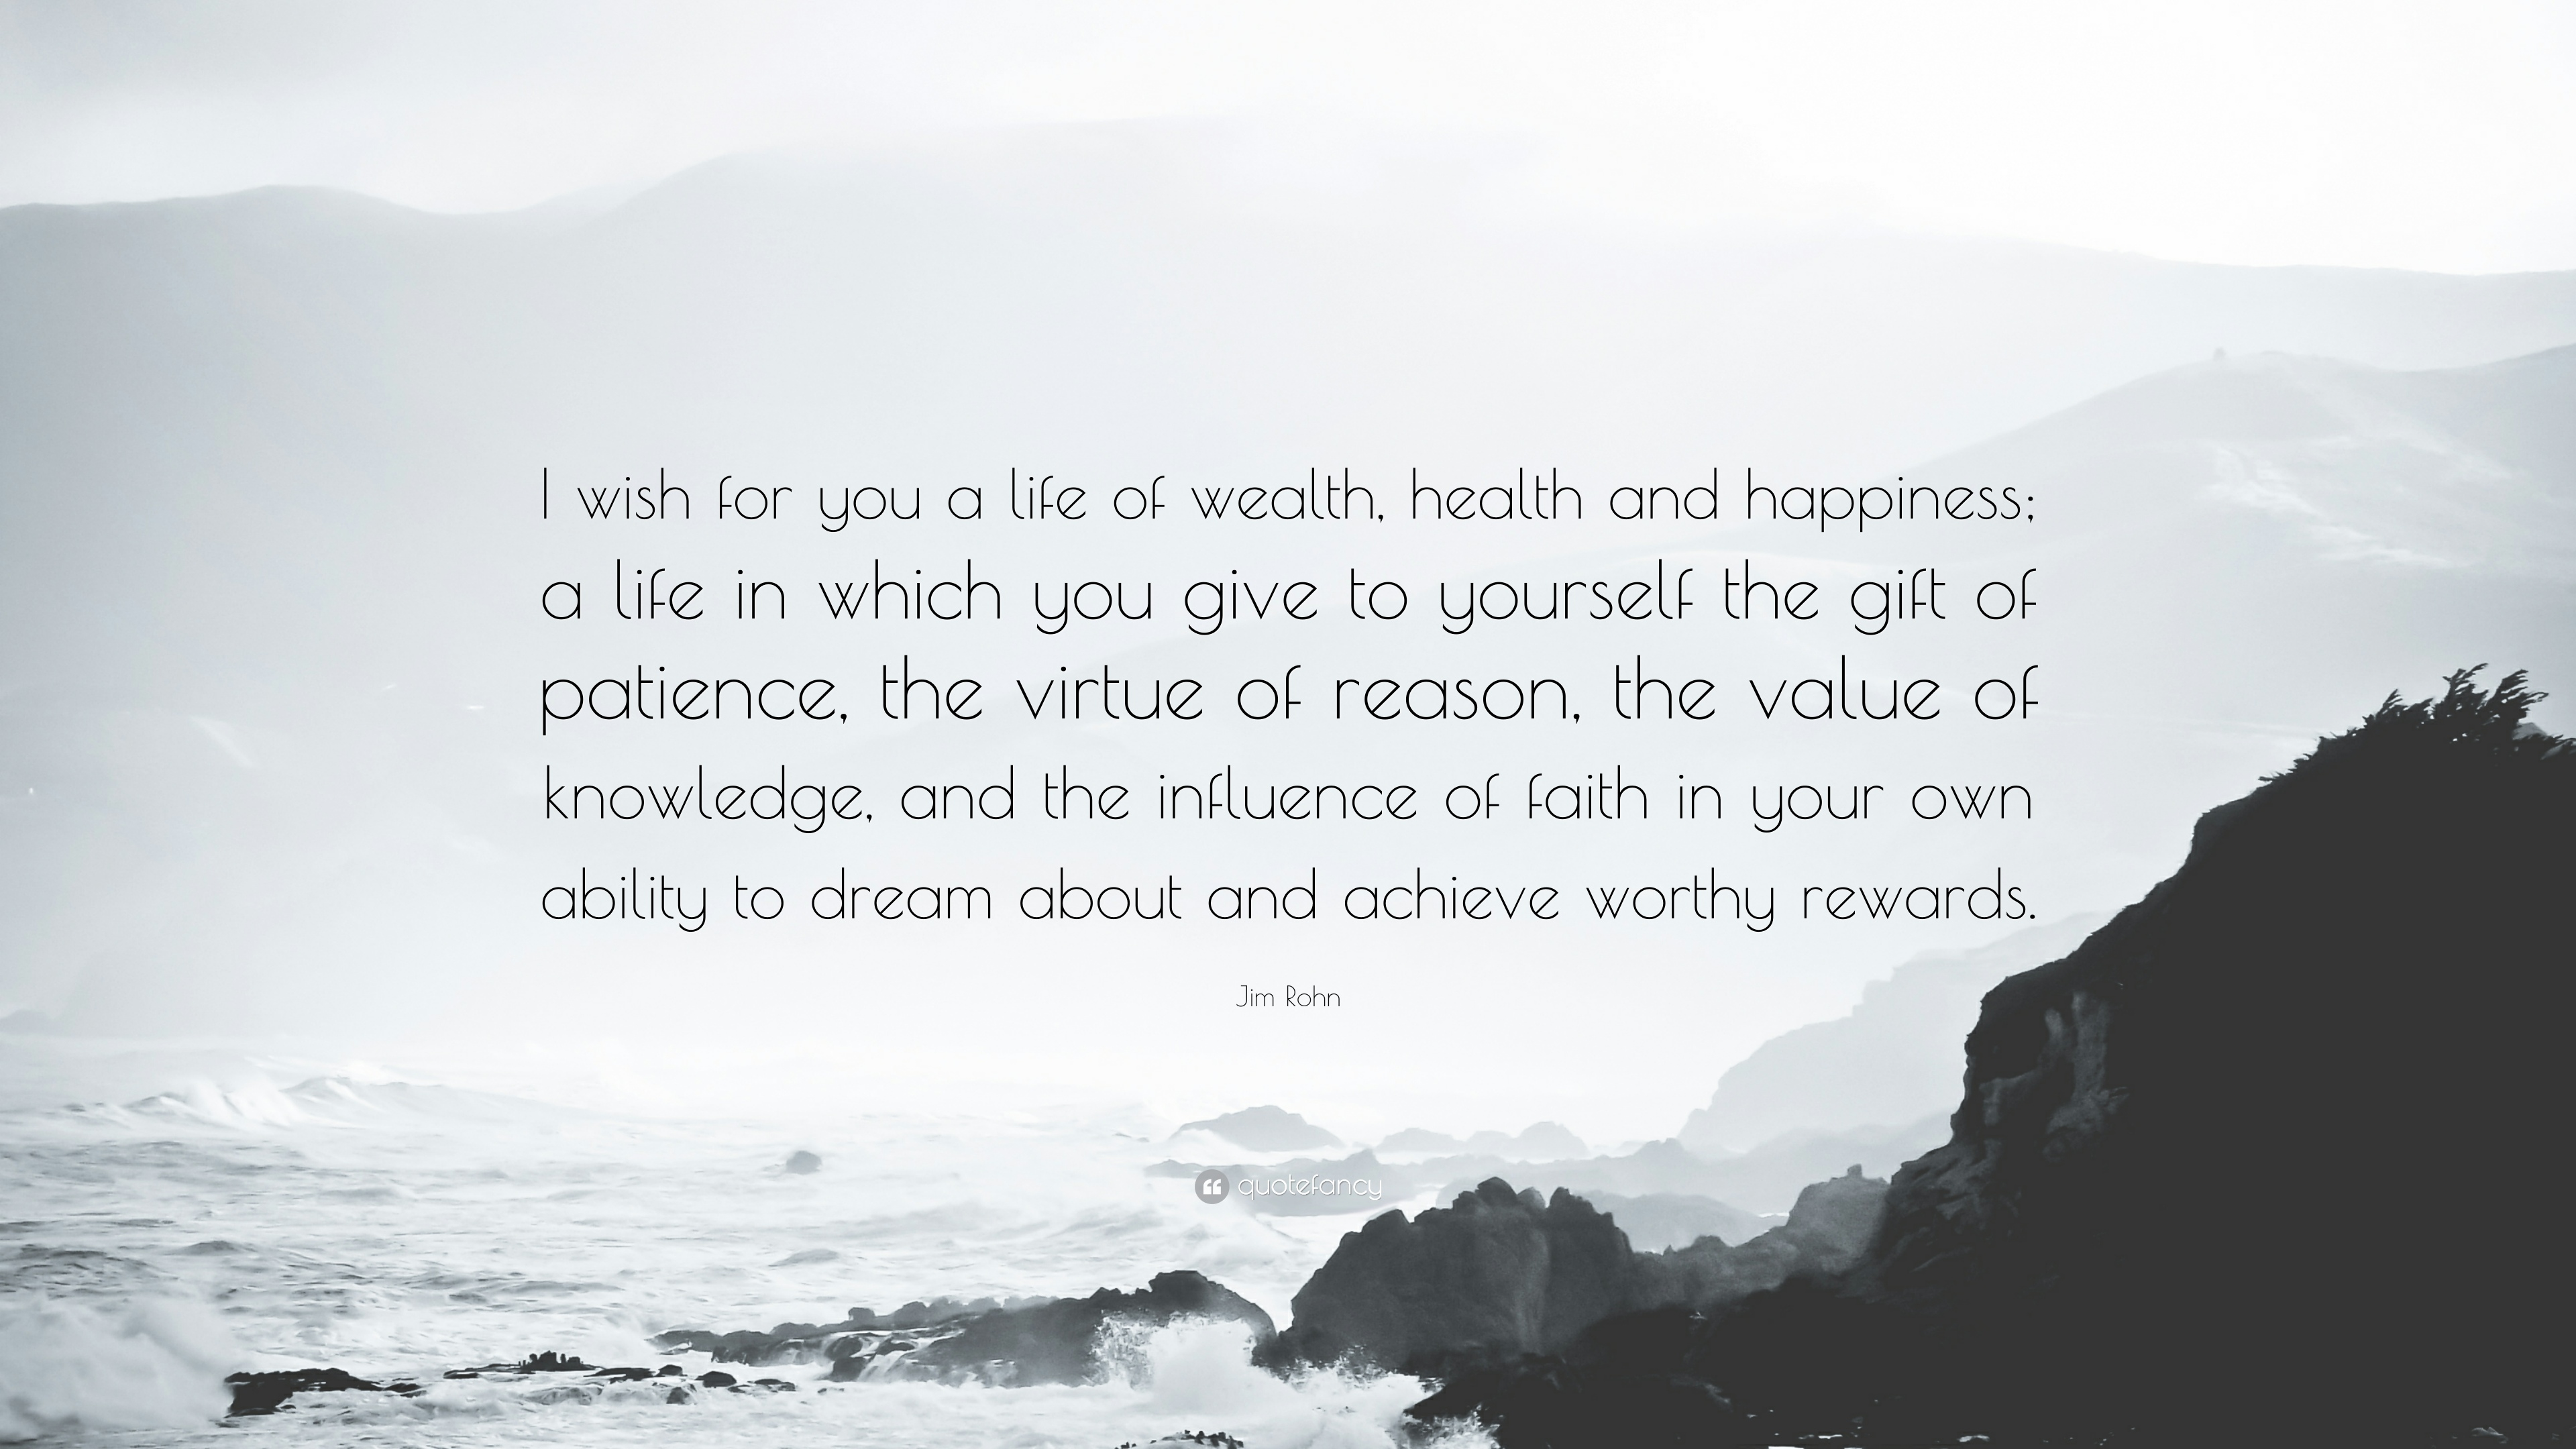 Exceptionnel Jim Rohn Quote: U201cI Wish For You A Life Of Wealth, Health And